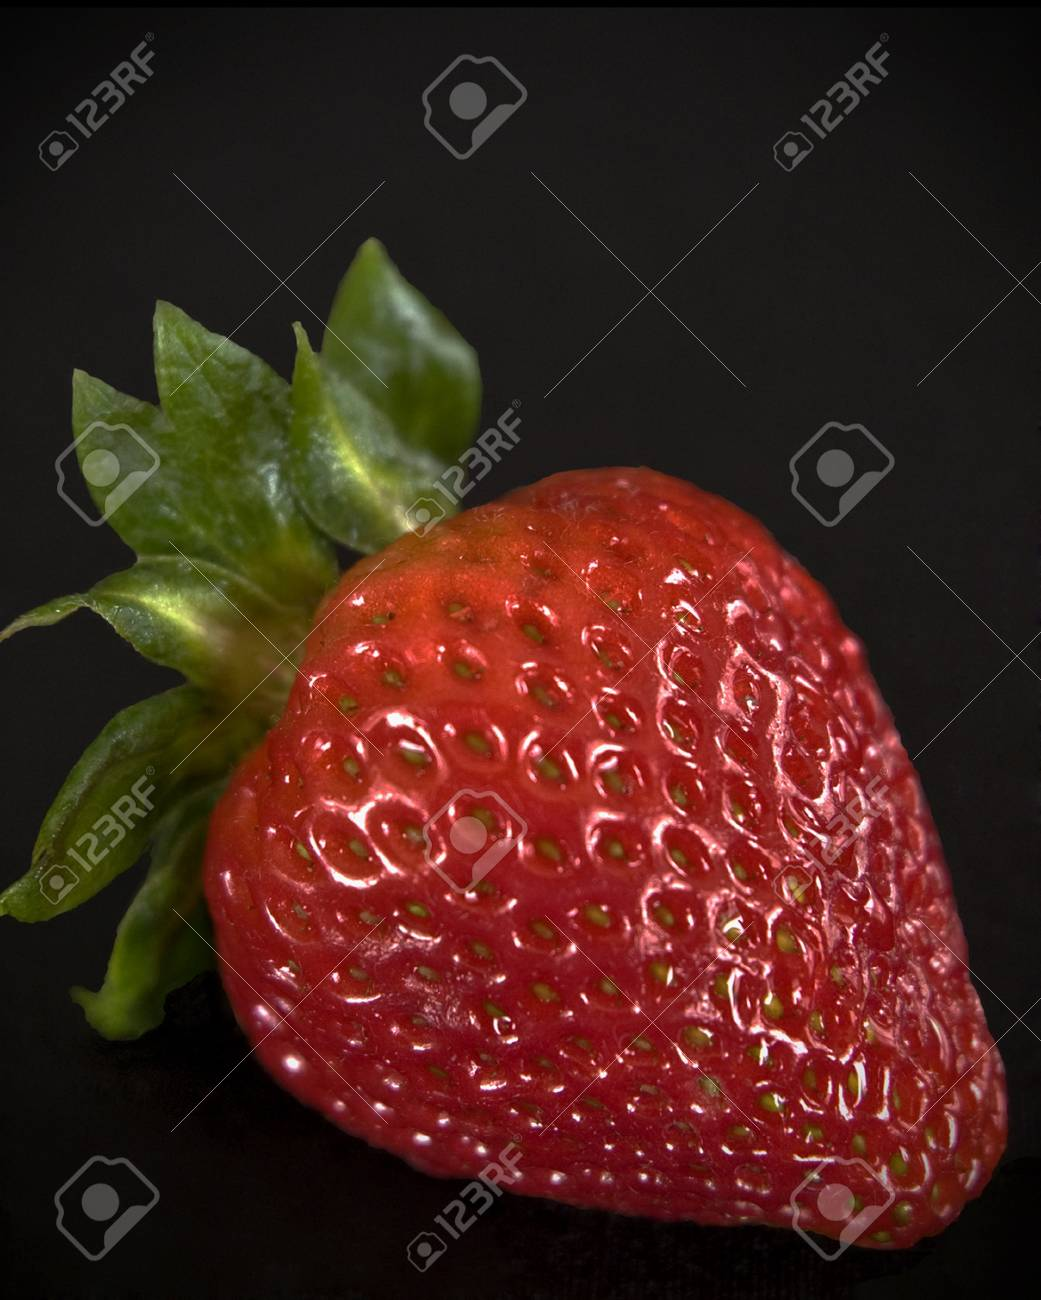 Starwberry close up on black background Stock Photo - 8287660